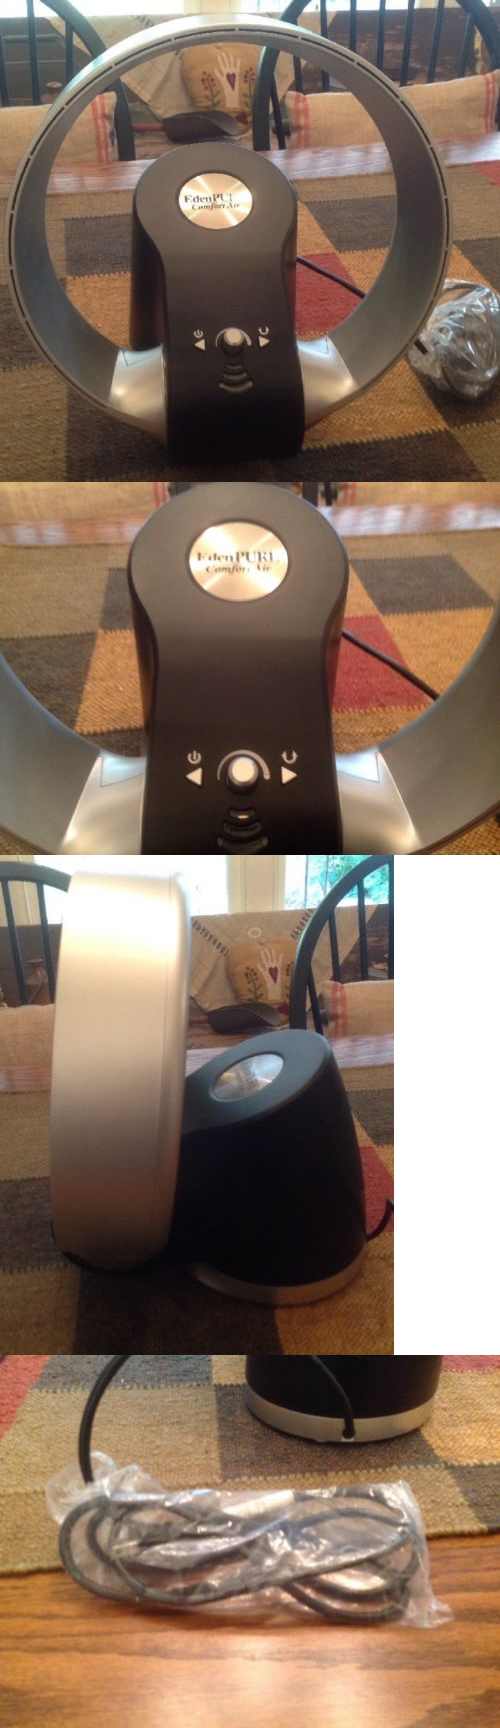 Heat recovery ventilator ebay - Other Home Heating And Cooling 20598 Edenpure 12 Comfort Air Bladeless Fan W Remote